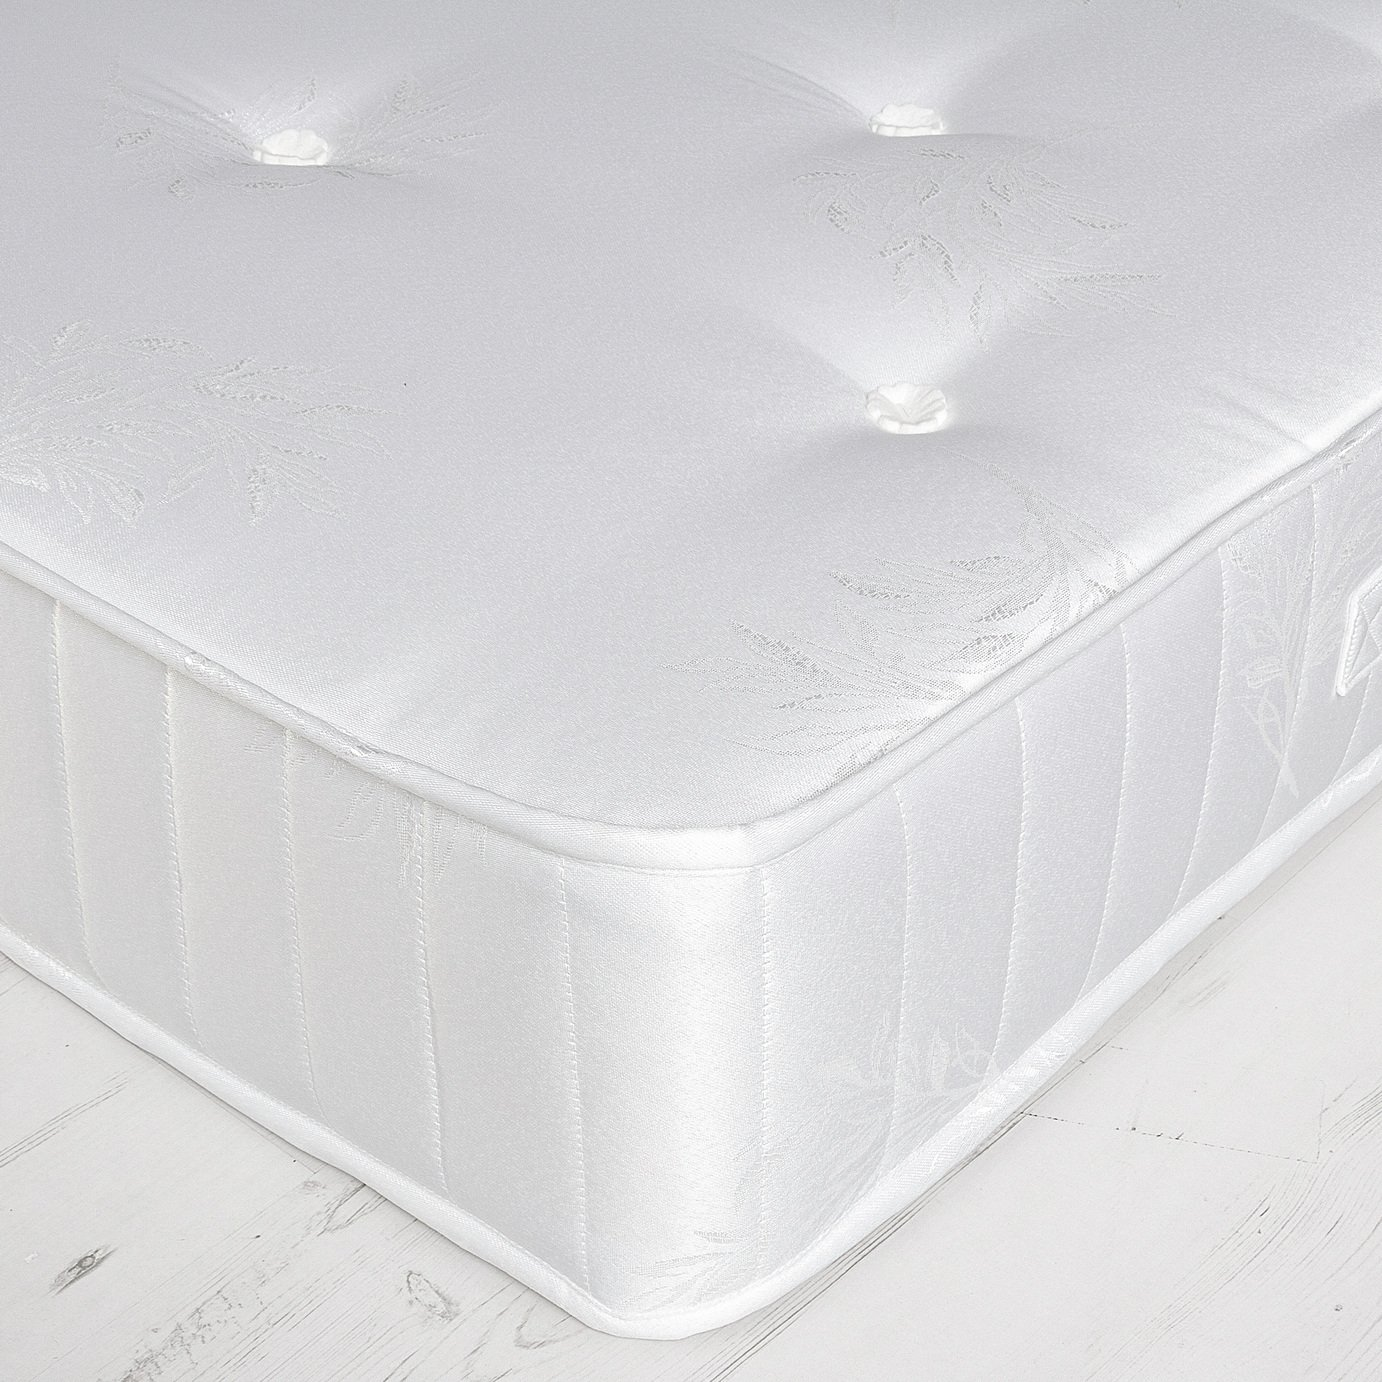 Image of Airsprung - Astall 1500 Pocket Sprung Small - Double Mattress